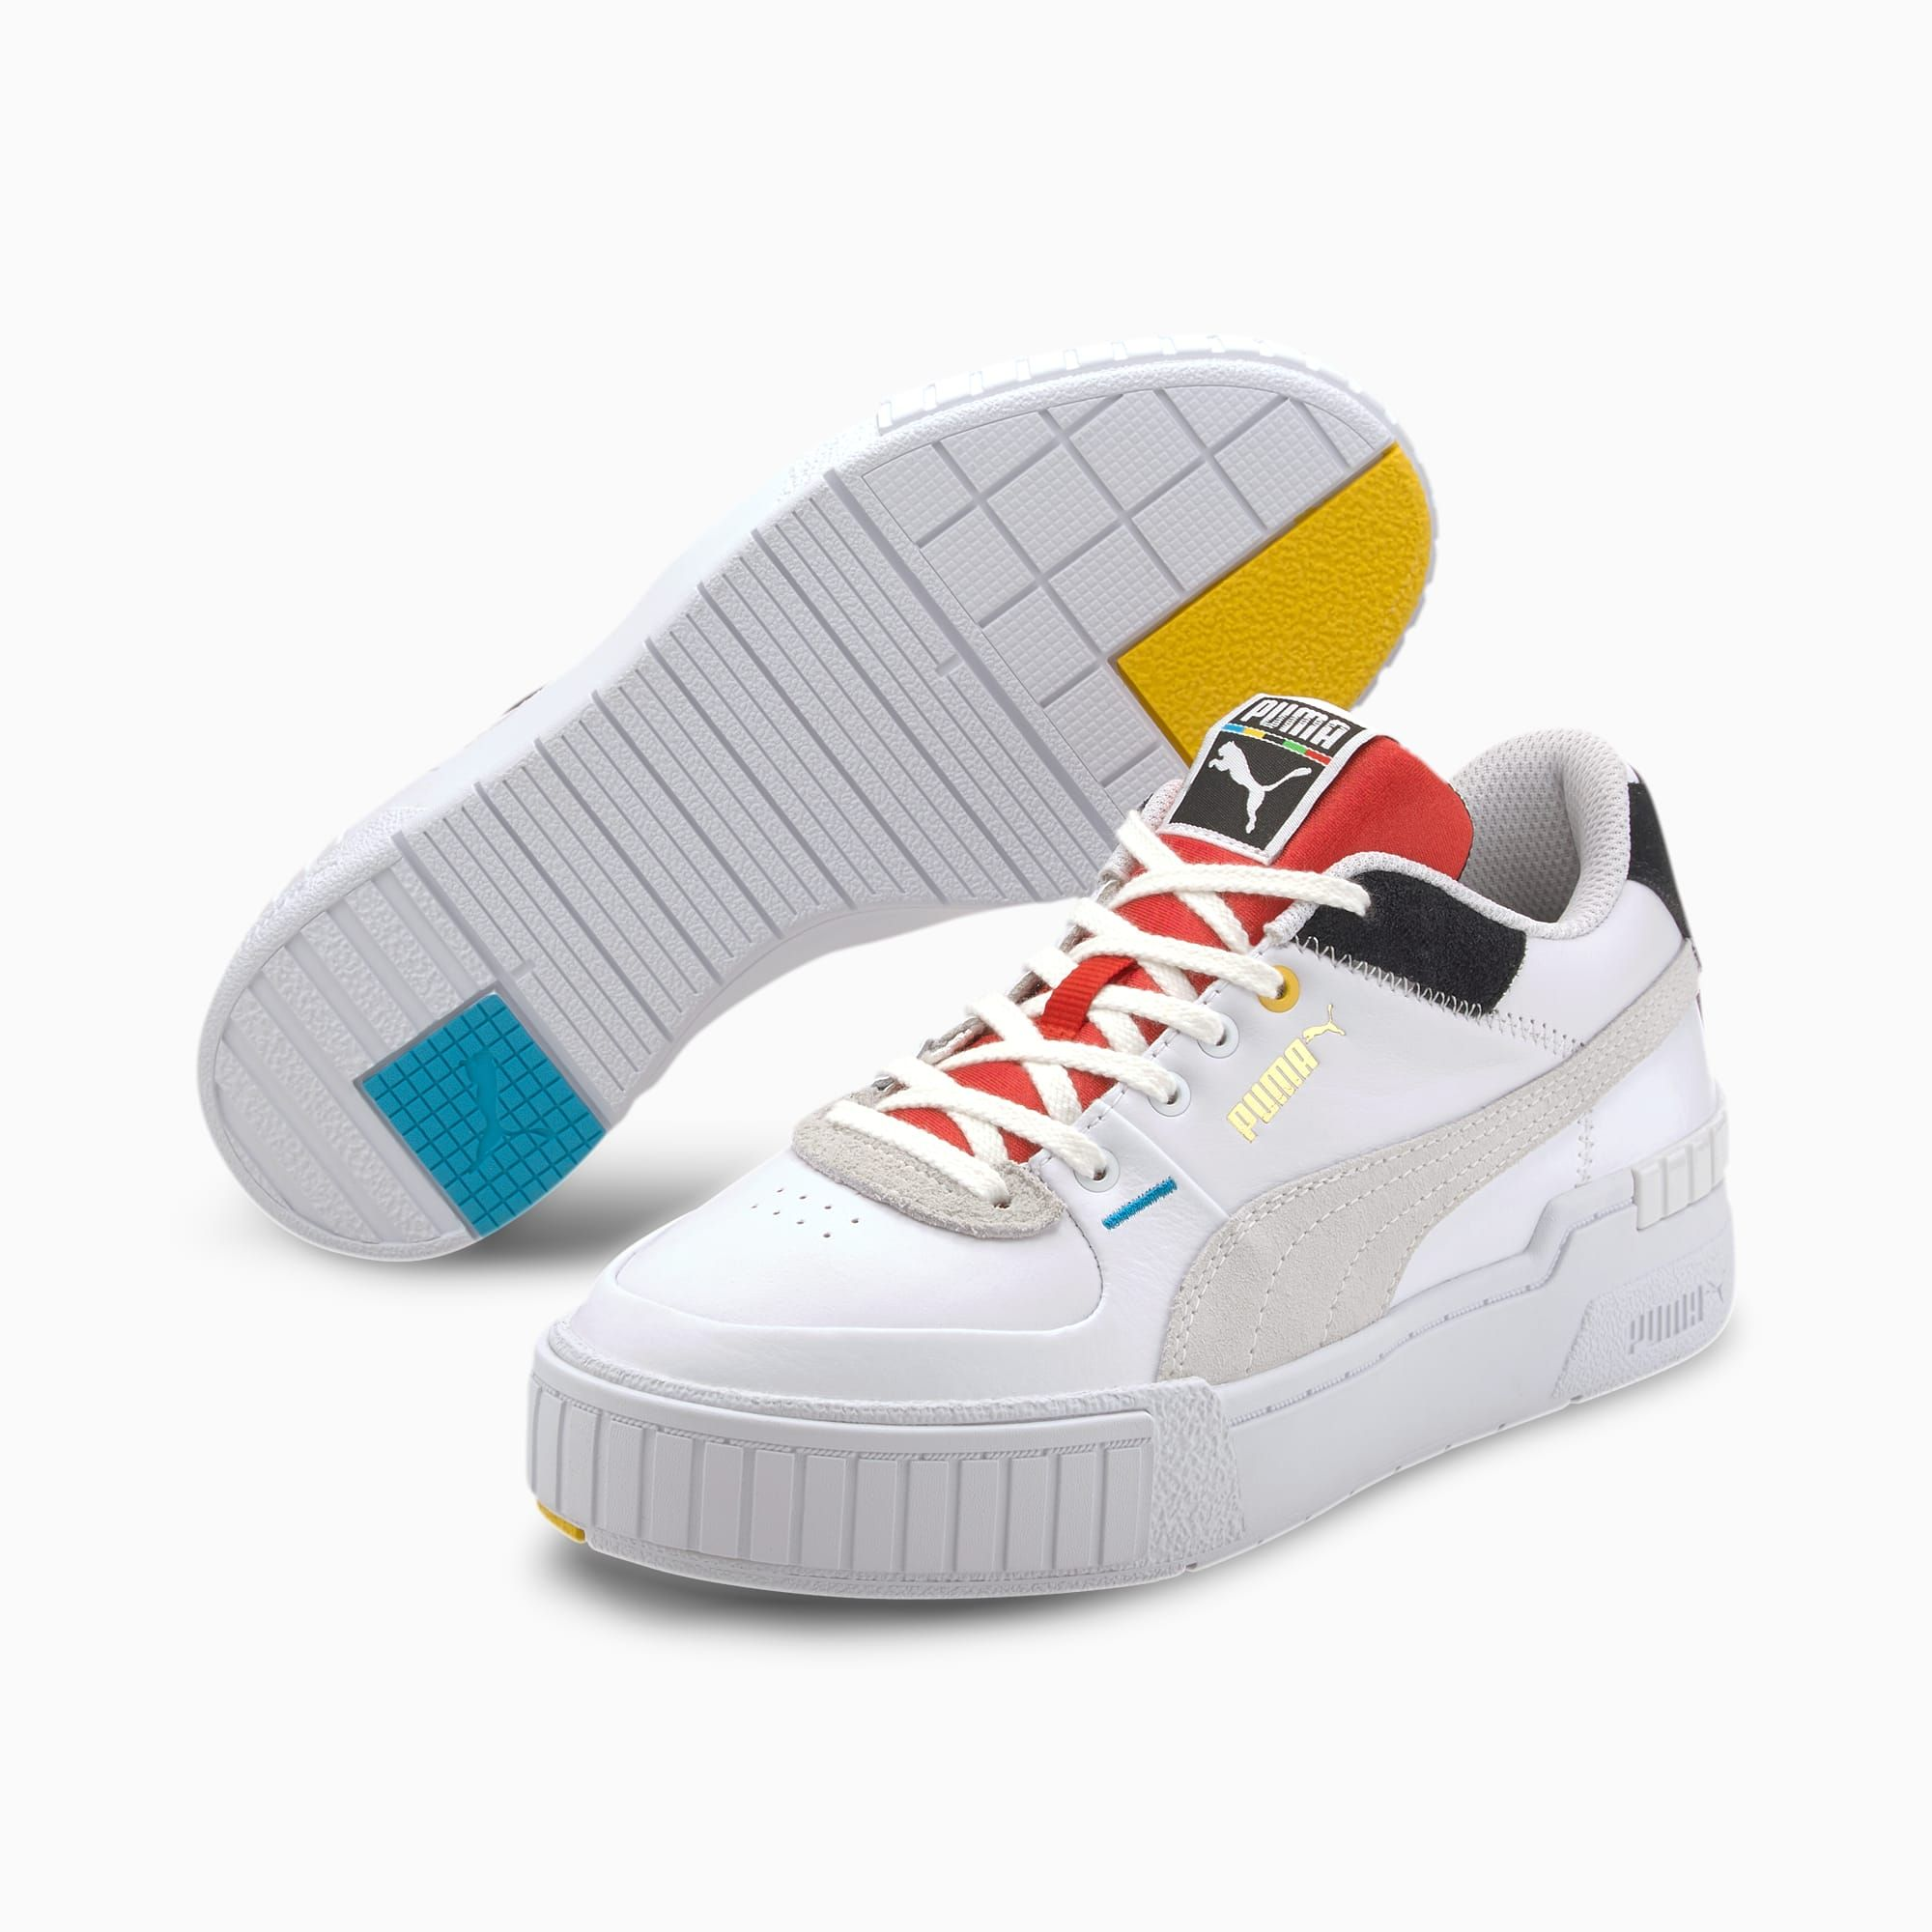 Cali Sport The Unity Collection Women's Trainers Puma